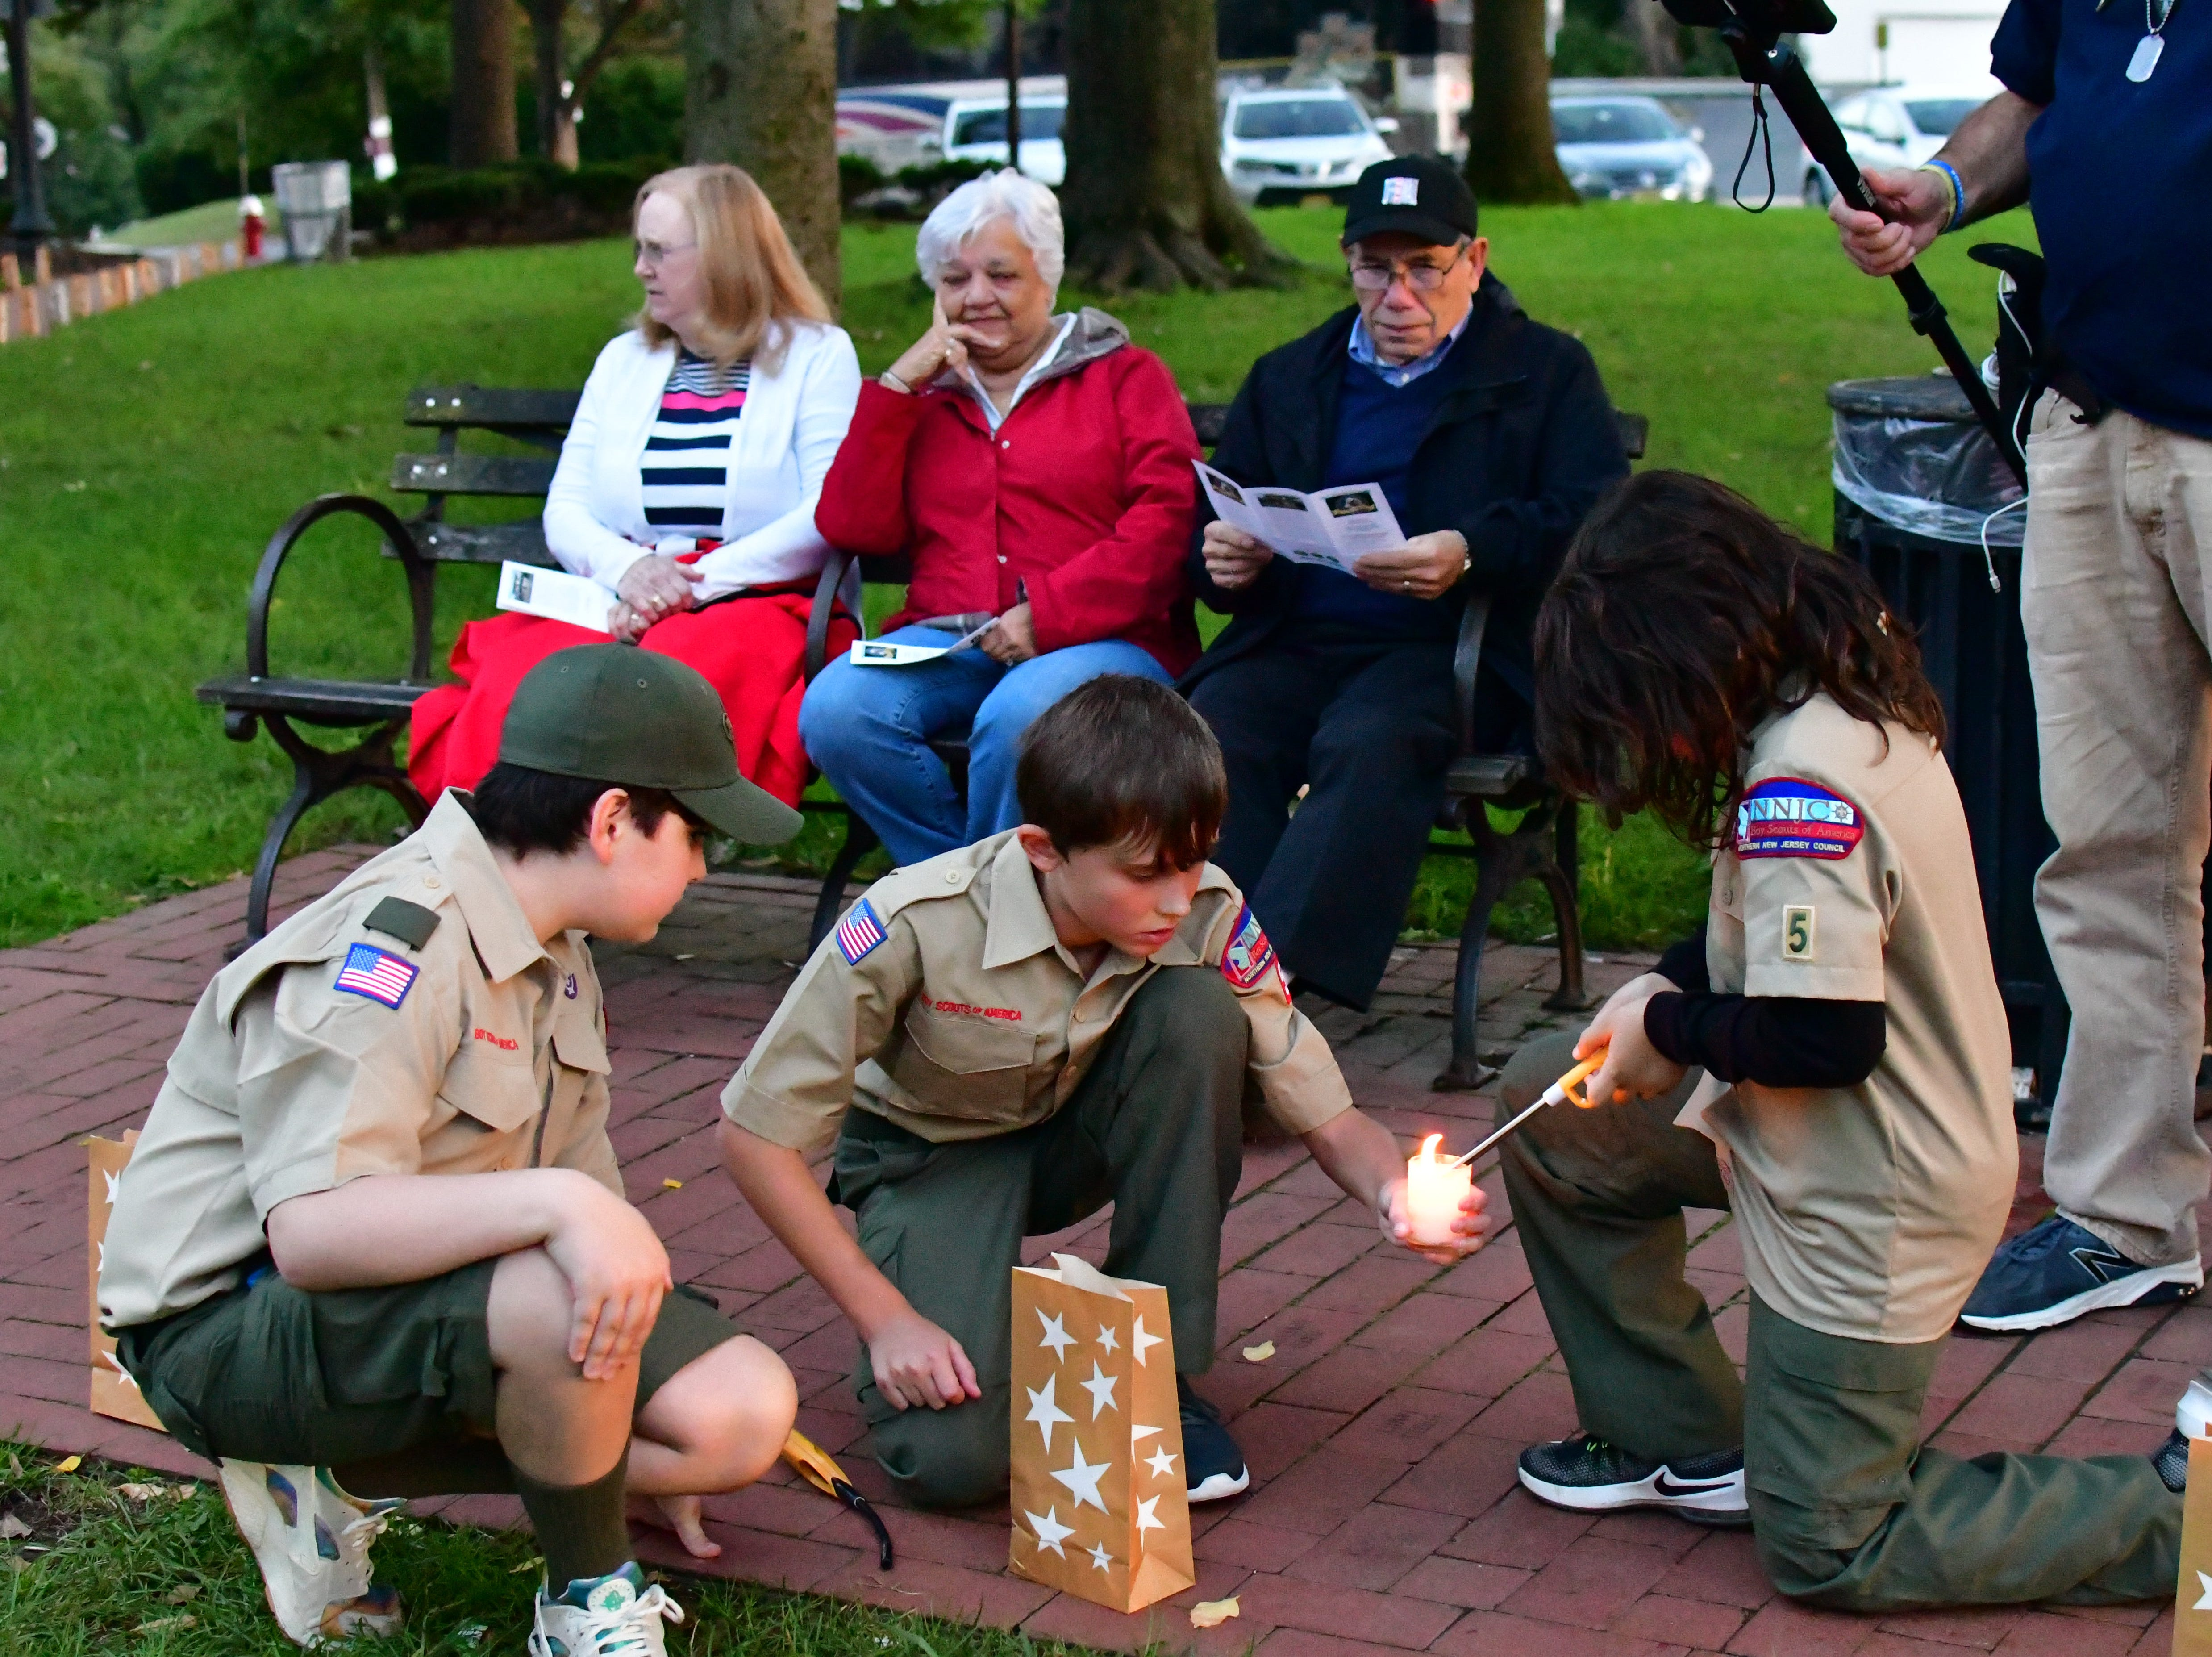 Helping light the luminaries, are boy scouts Joshua Harrold, Adam Mannina, John Cauagnuolo (shown in any order).  The Gold Star Mother's Day Committee sponsored its eighth annual event commemorating Gold Star Mother's Day on Sept. 30, at Van Neste Park, Ridgewood. After a short ceremony, hundreds of luminaries were lit to honor Gold Star Mothers (moms who had lost sons and daughters to the war) and their families.